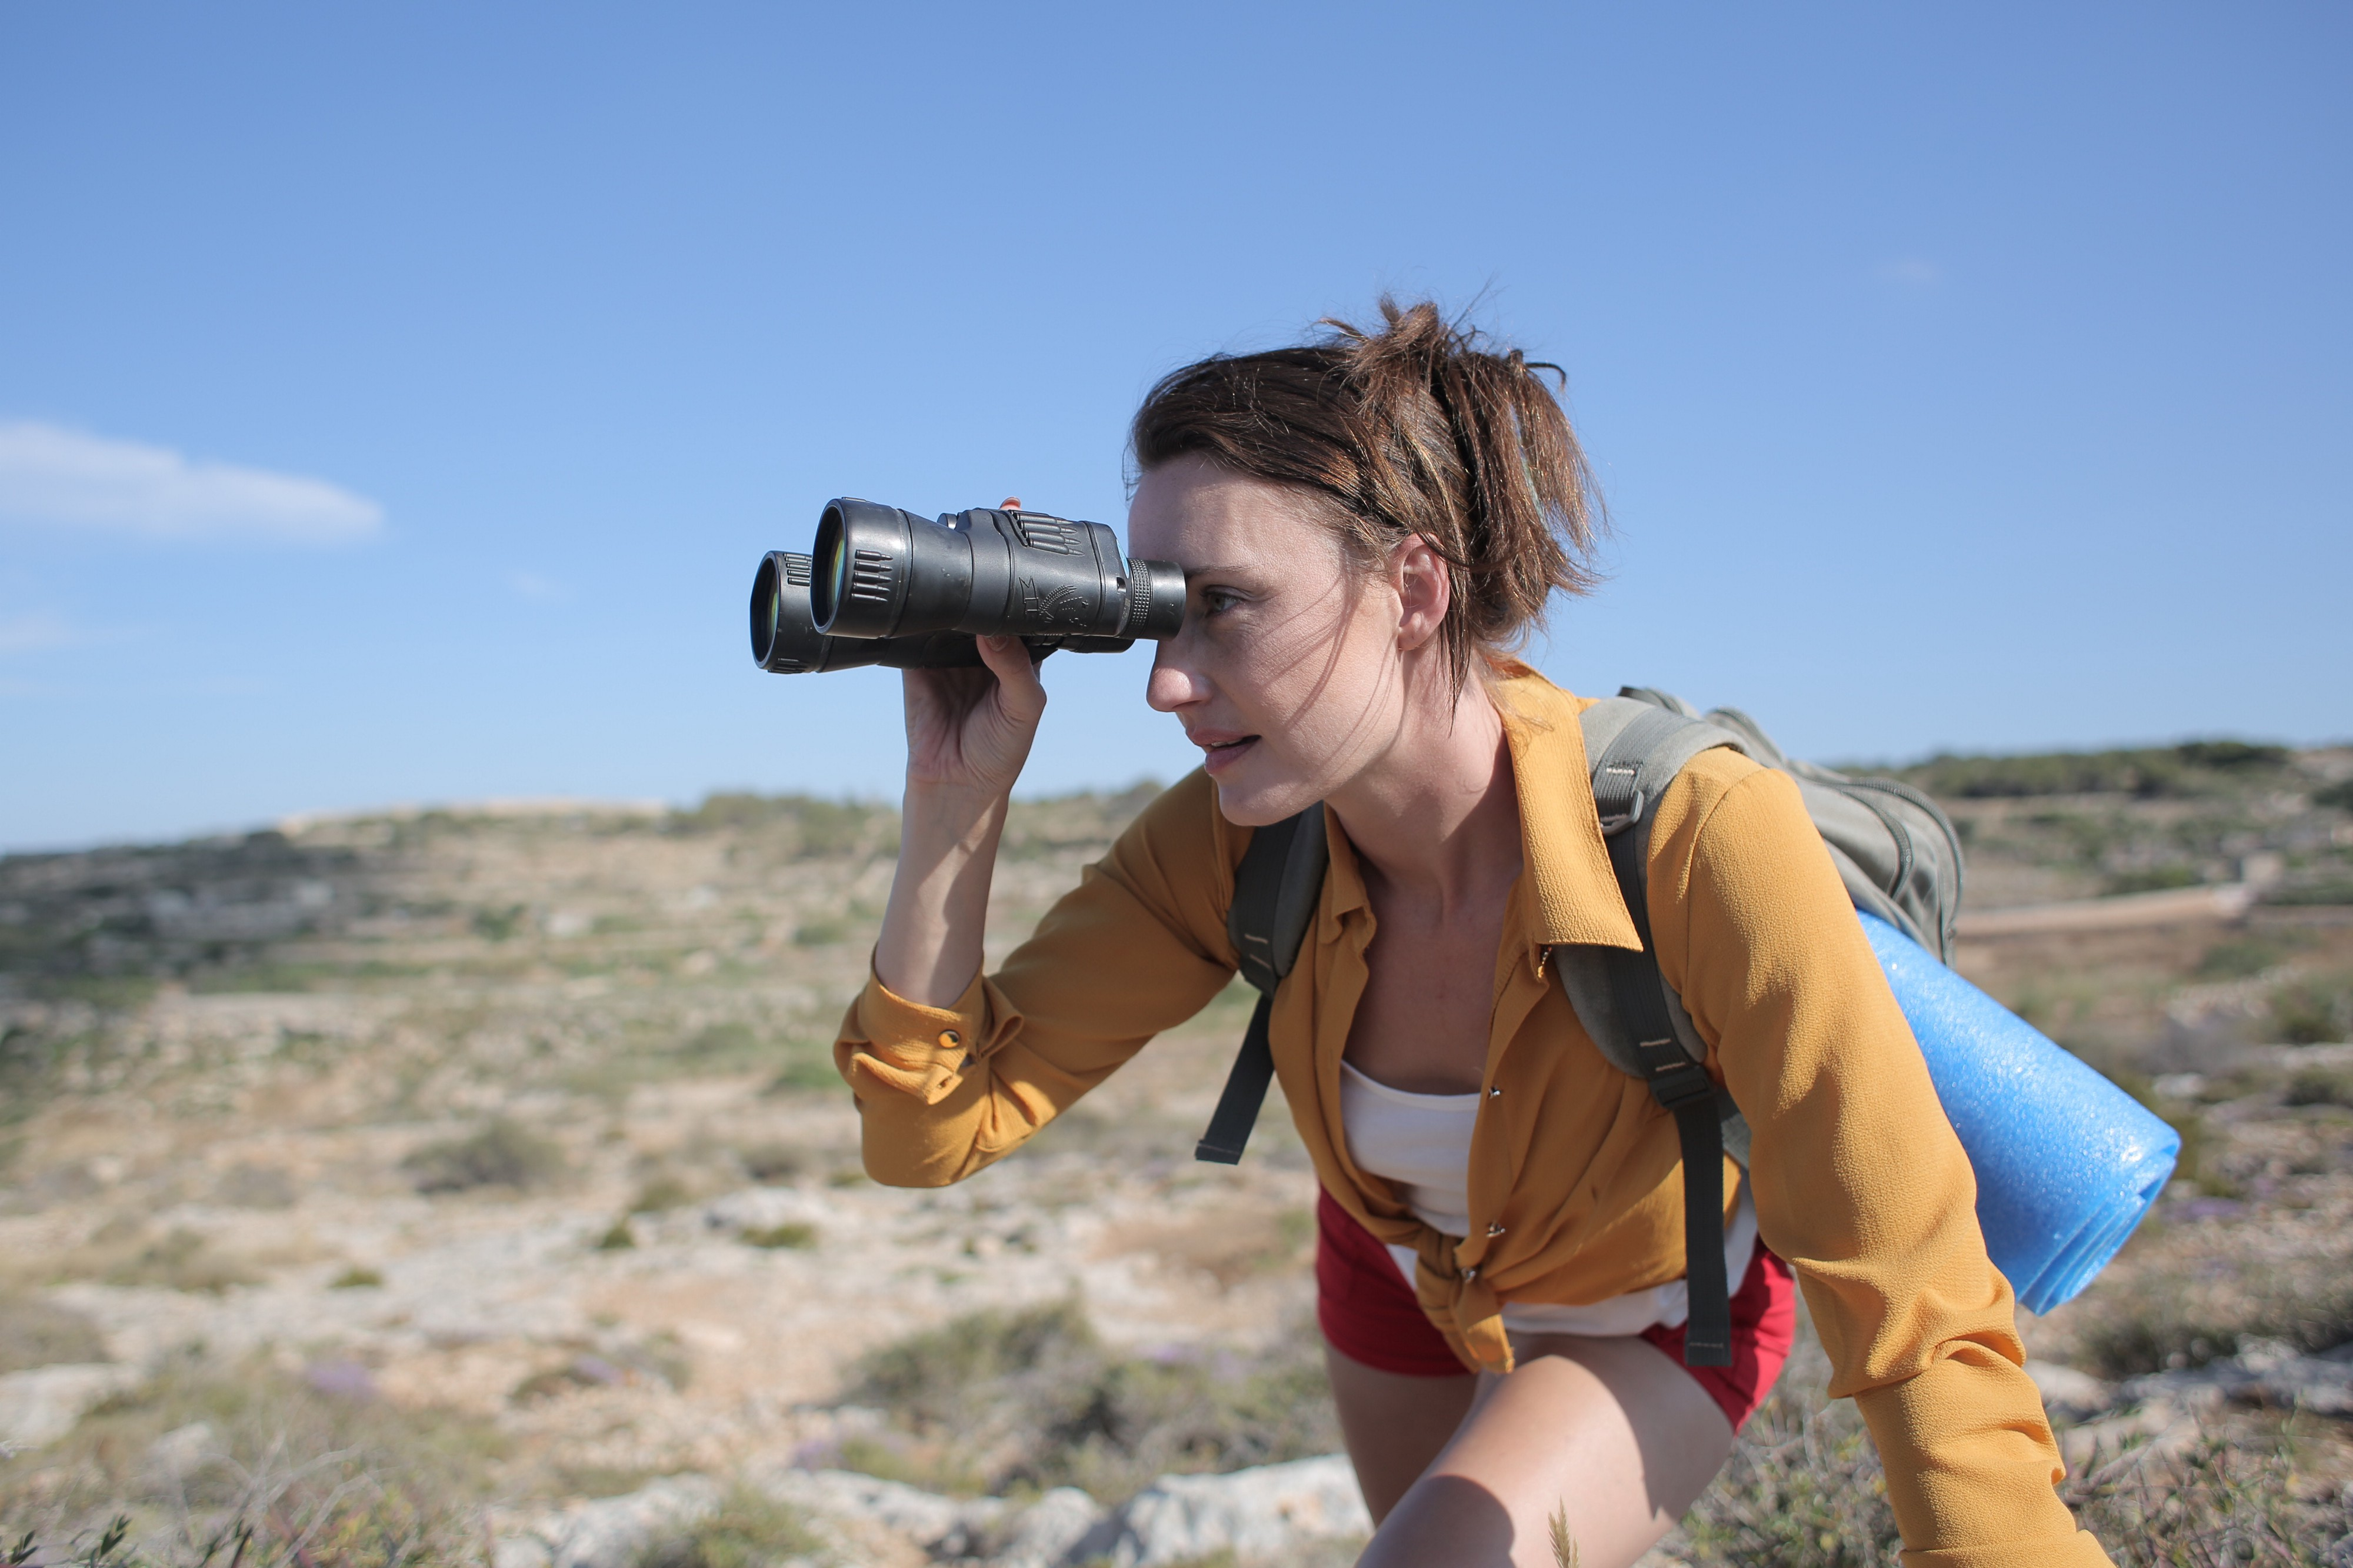 A woman in a yellow shirt and red shorts is outside, bent over and peering intently at something in the distance through a pair of binoculars.